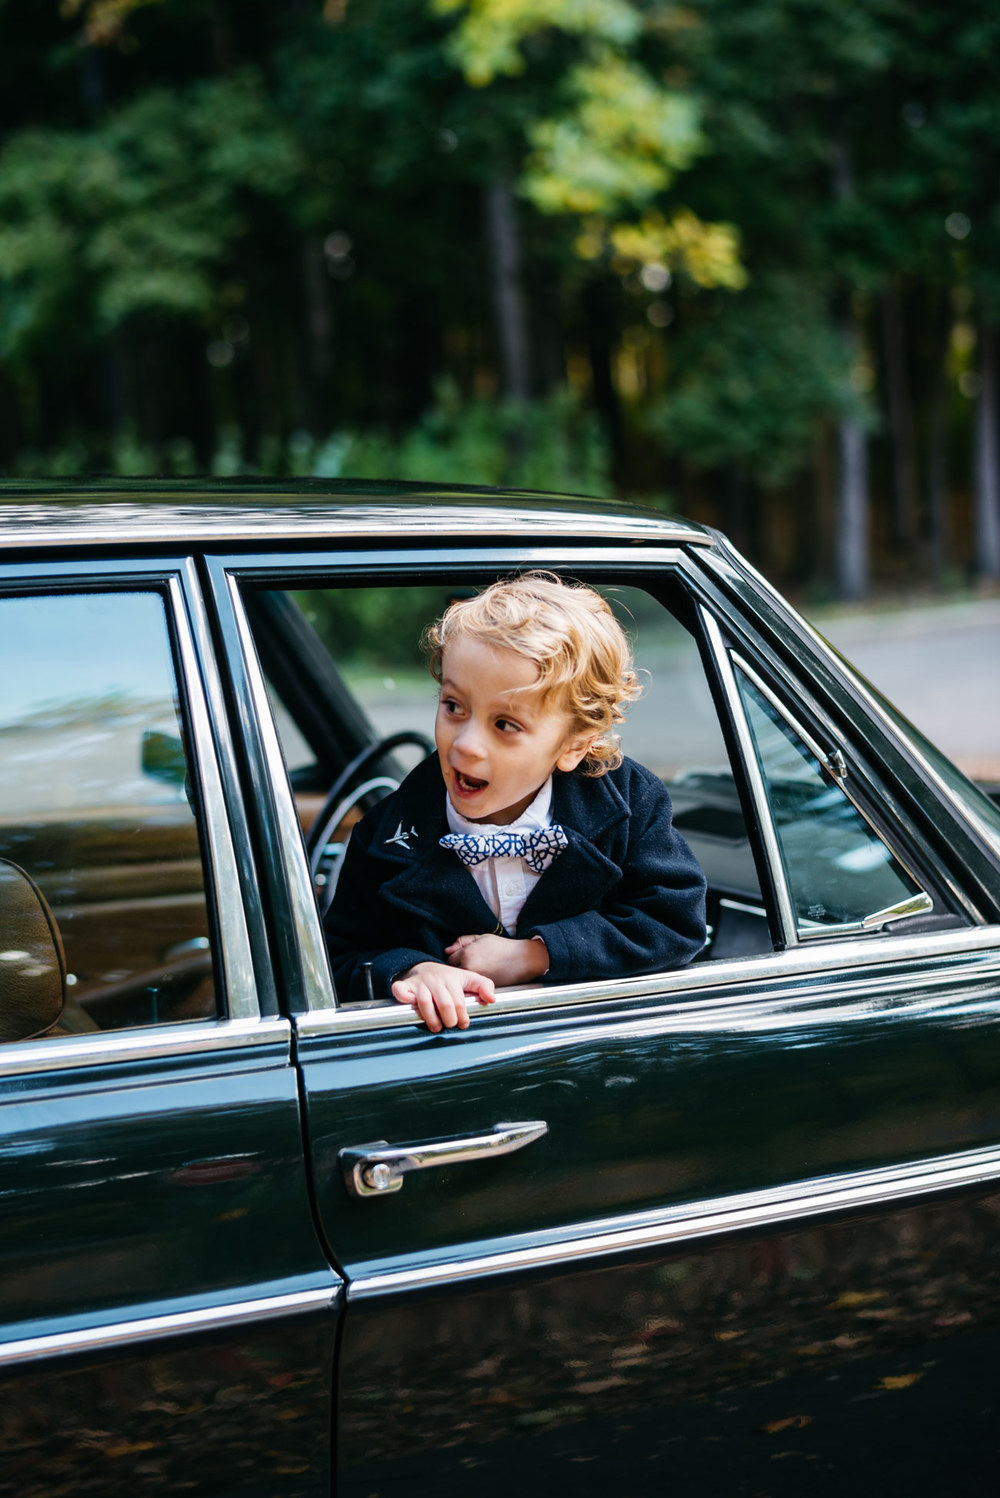 cute kid in car vintage mercedes lifestyle at aquinas college